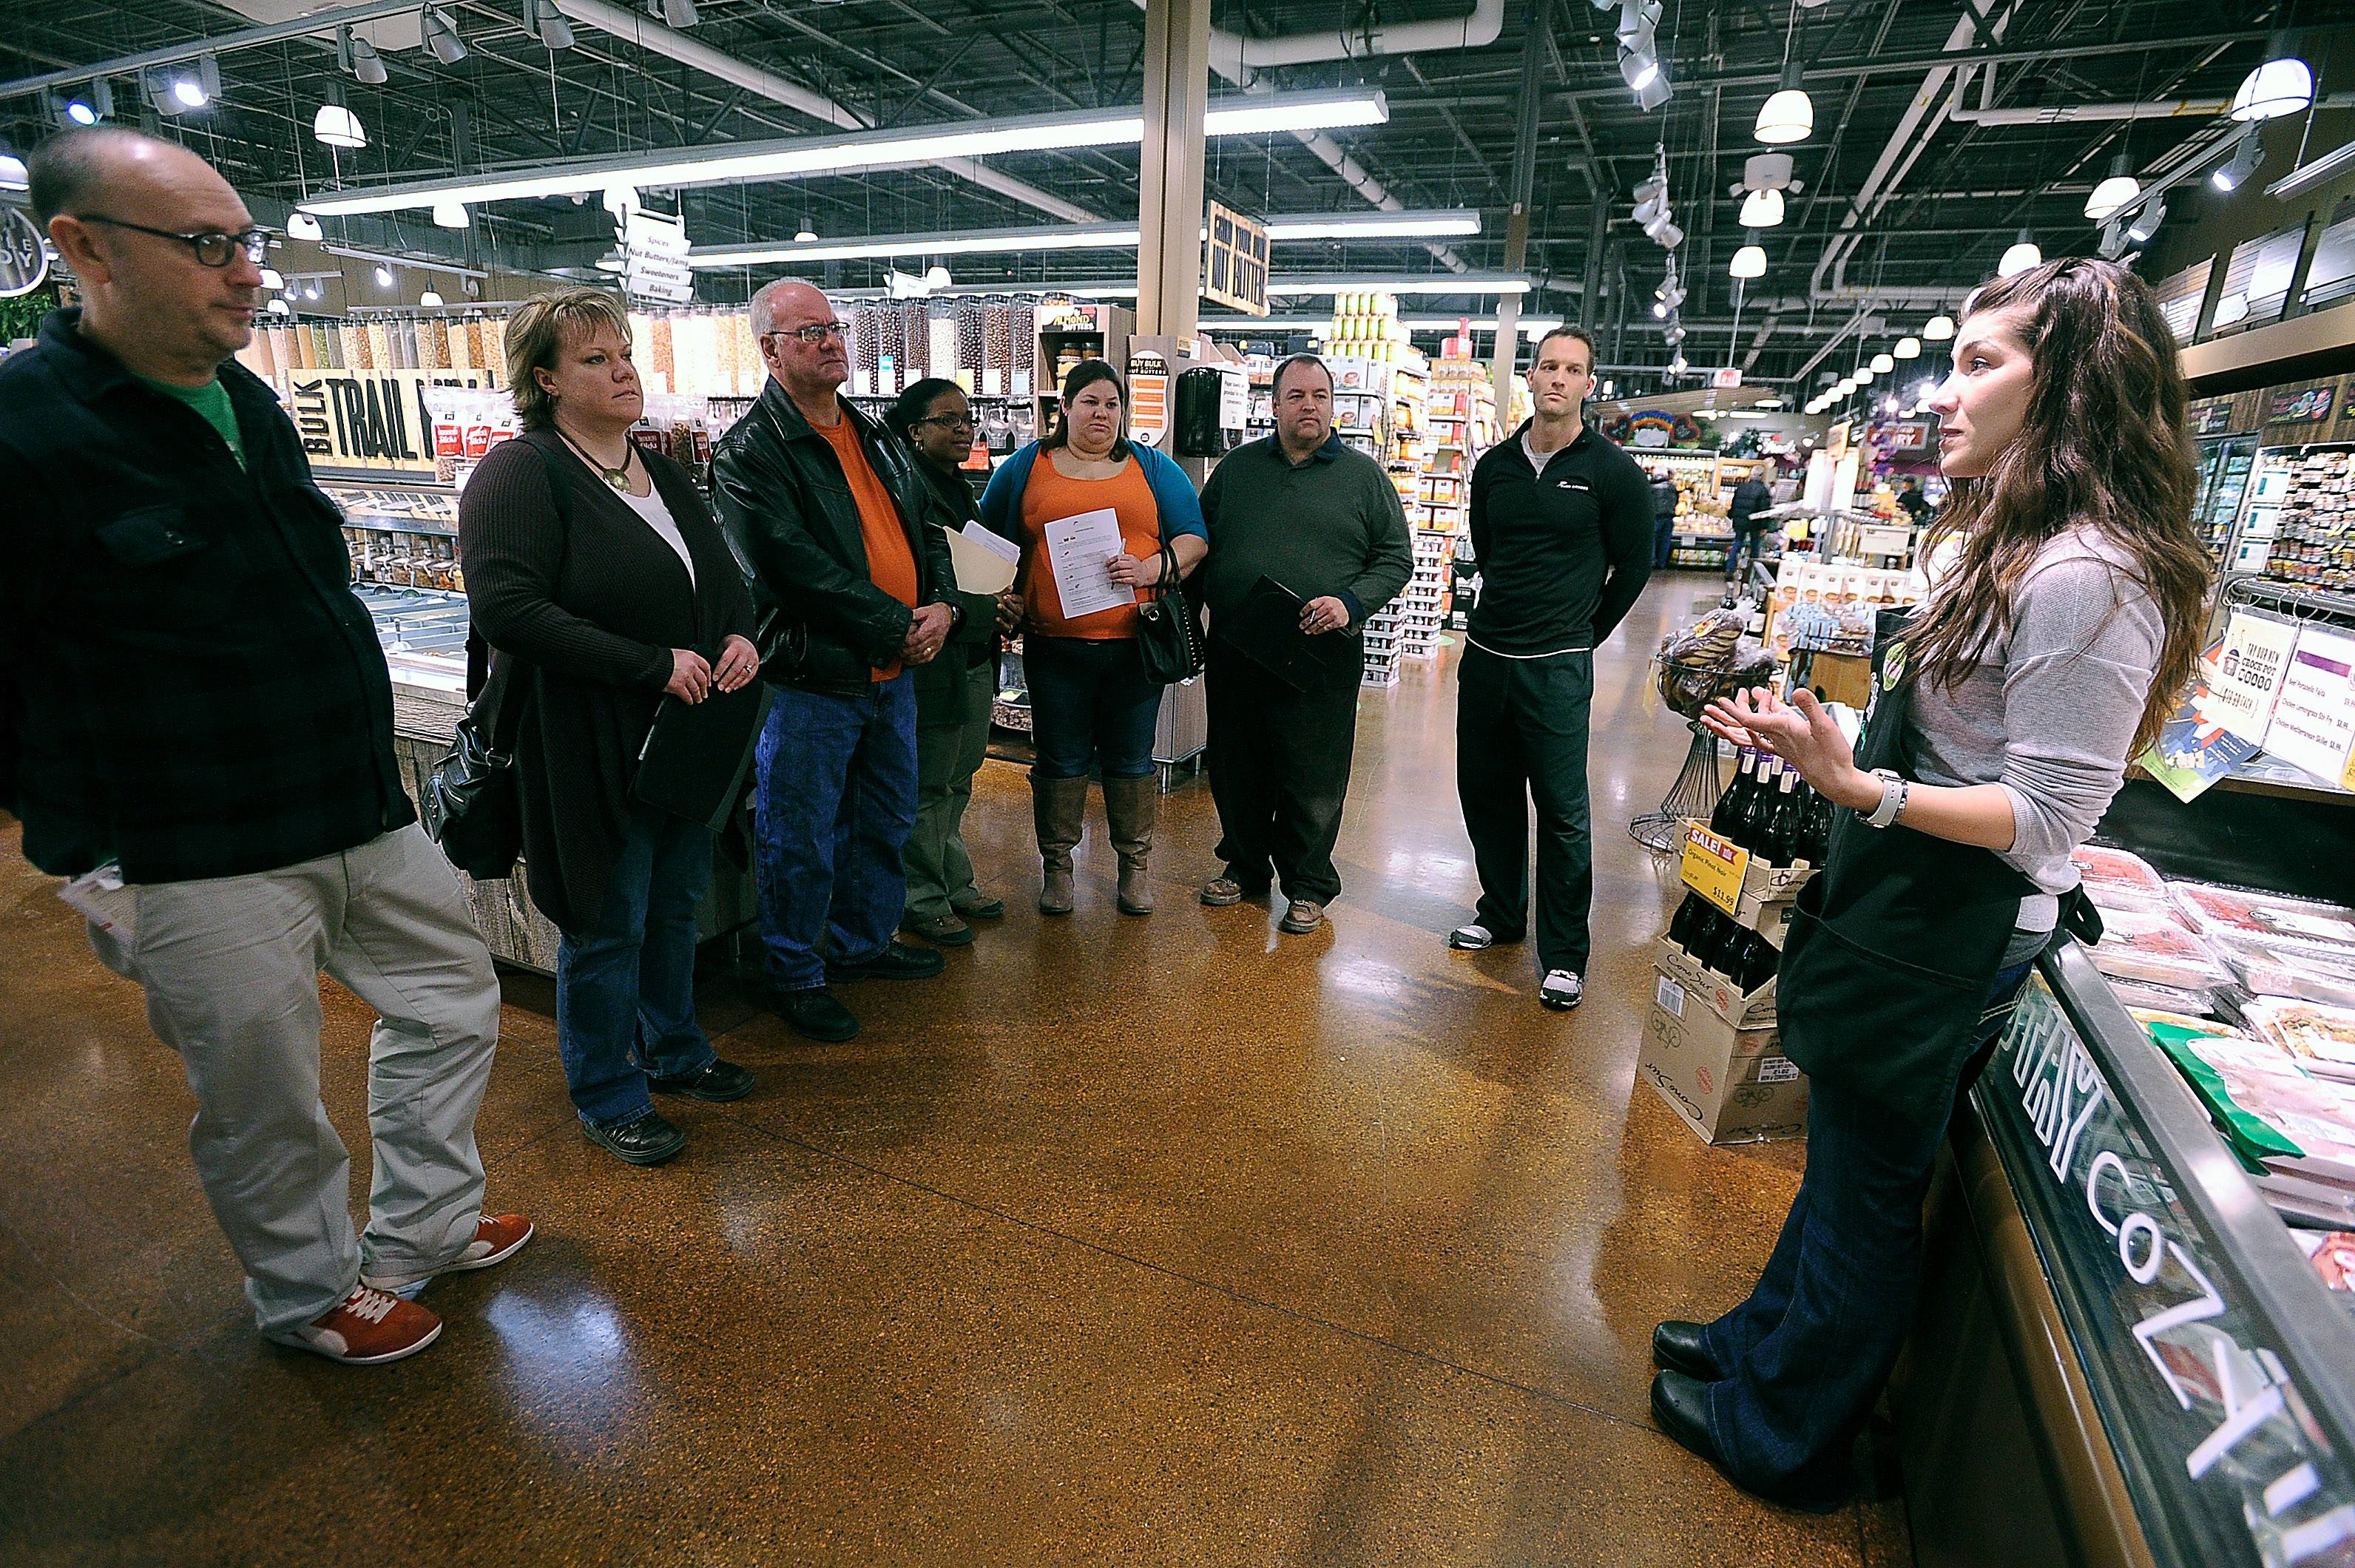 Whole Foods Market Assistant Marketing Specialist Tatiyana Baukovic offers shopping and nutrition tips as the Fittest Loser Challenge contestants tour the Schaumburg store.